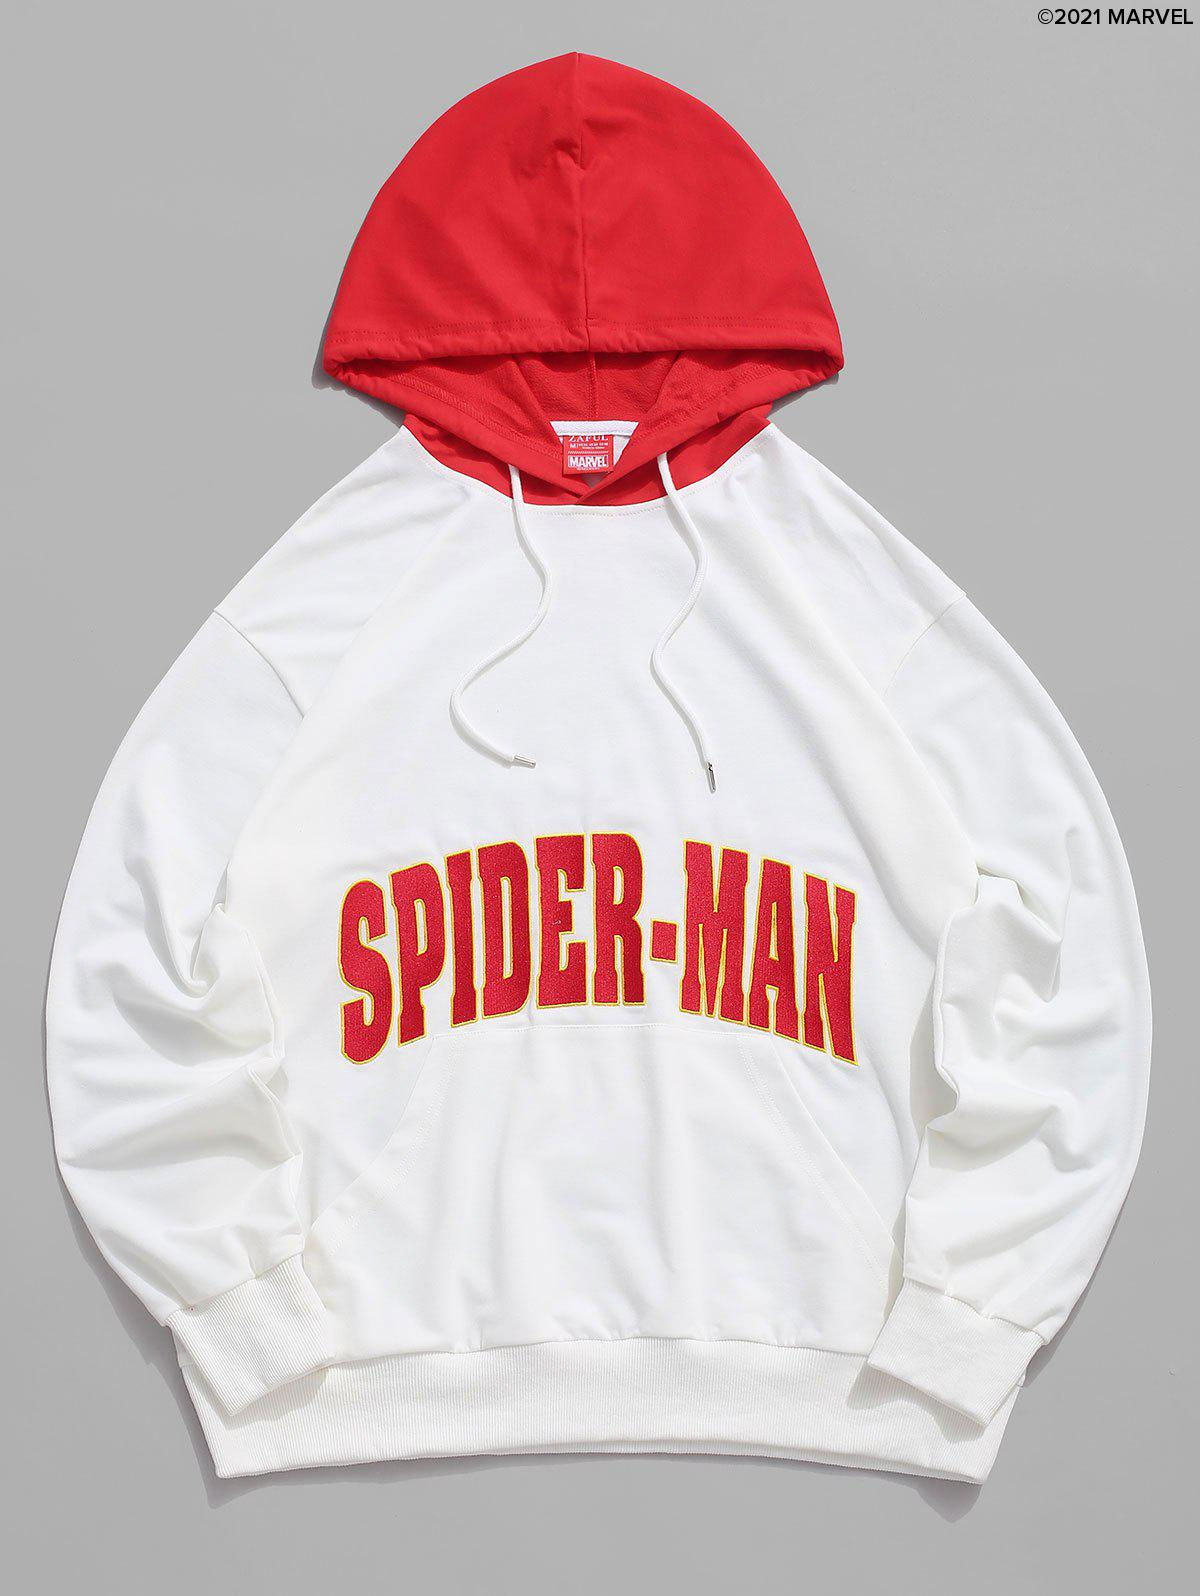 Affordable Marvel Spider-Man Letter Embroidered Contrast Pullover Hoodie